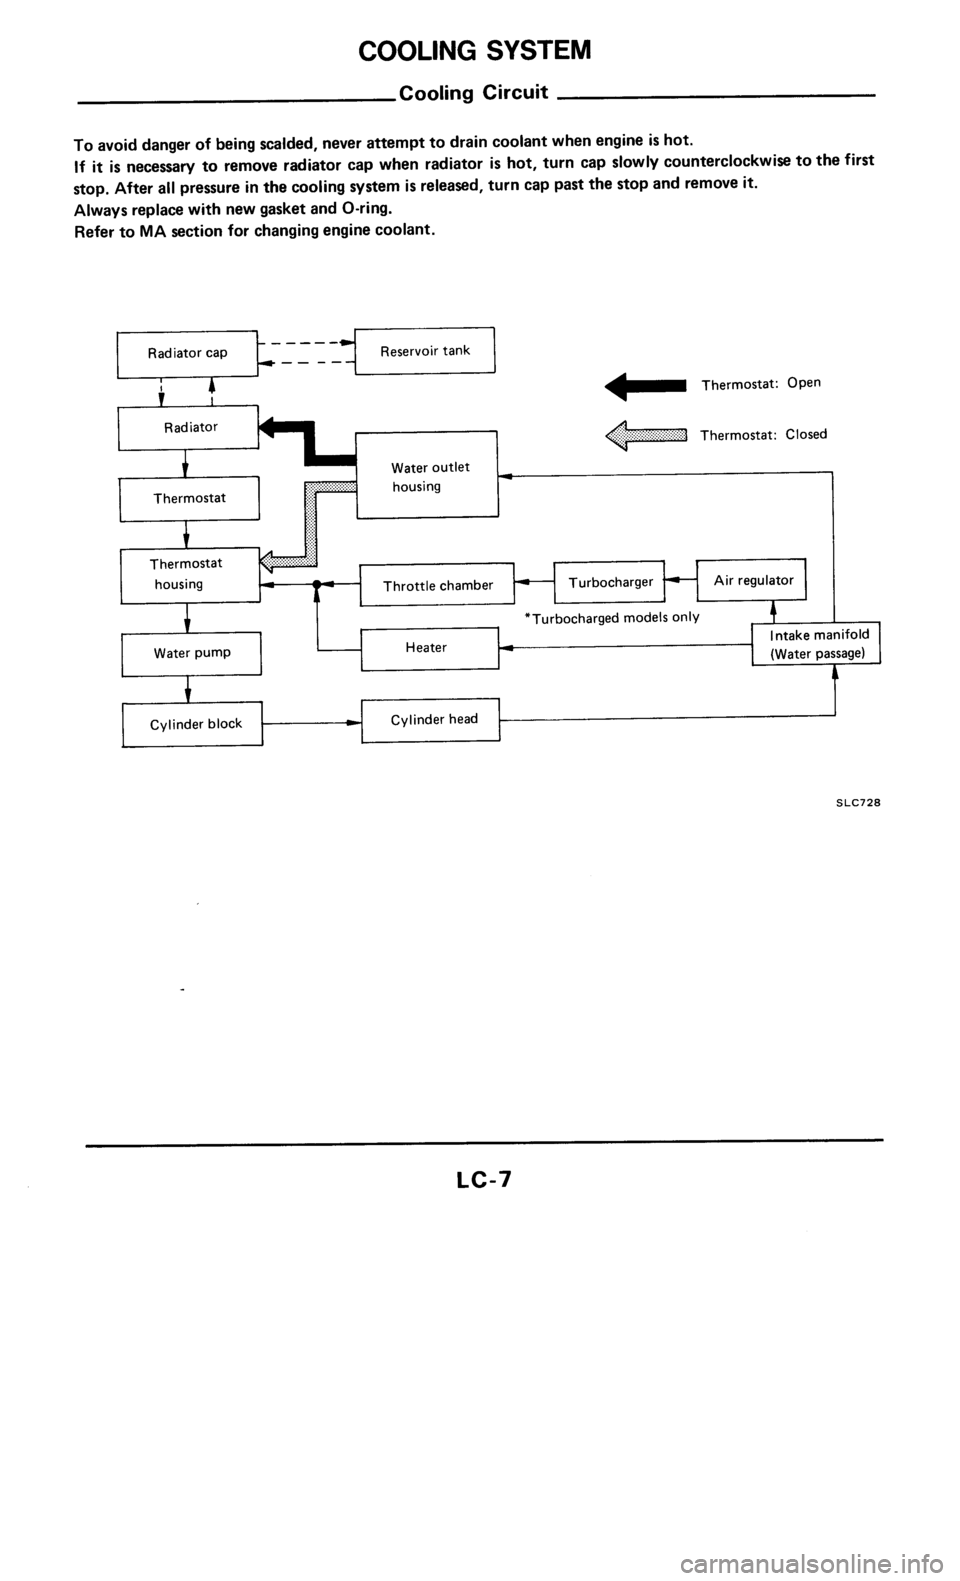 NISSAN 300ZX 1985 Z31 Engine Lubrication And Cooling System Workshop Manual, Page 7